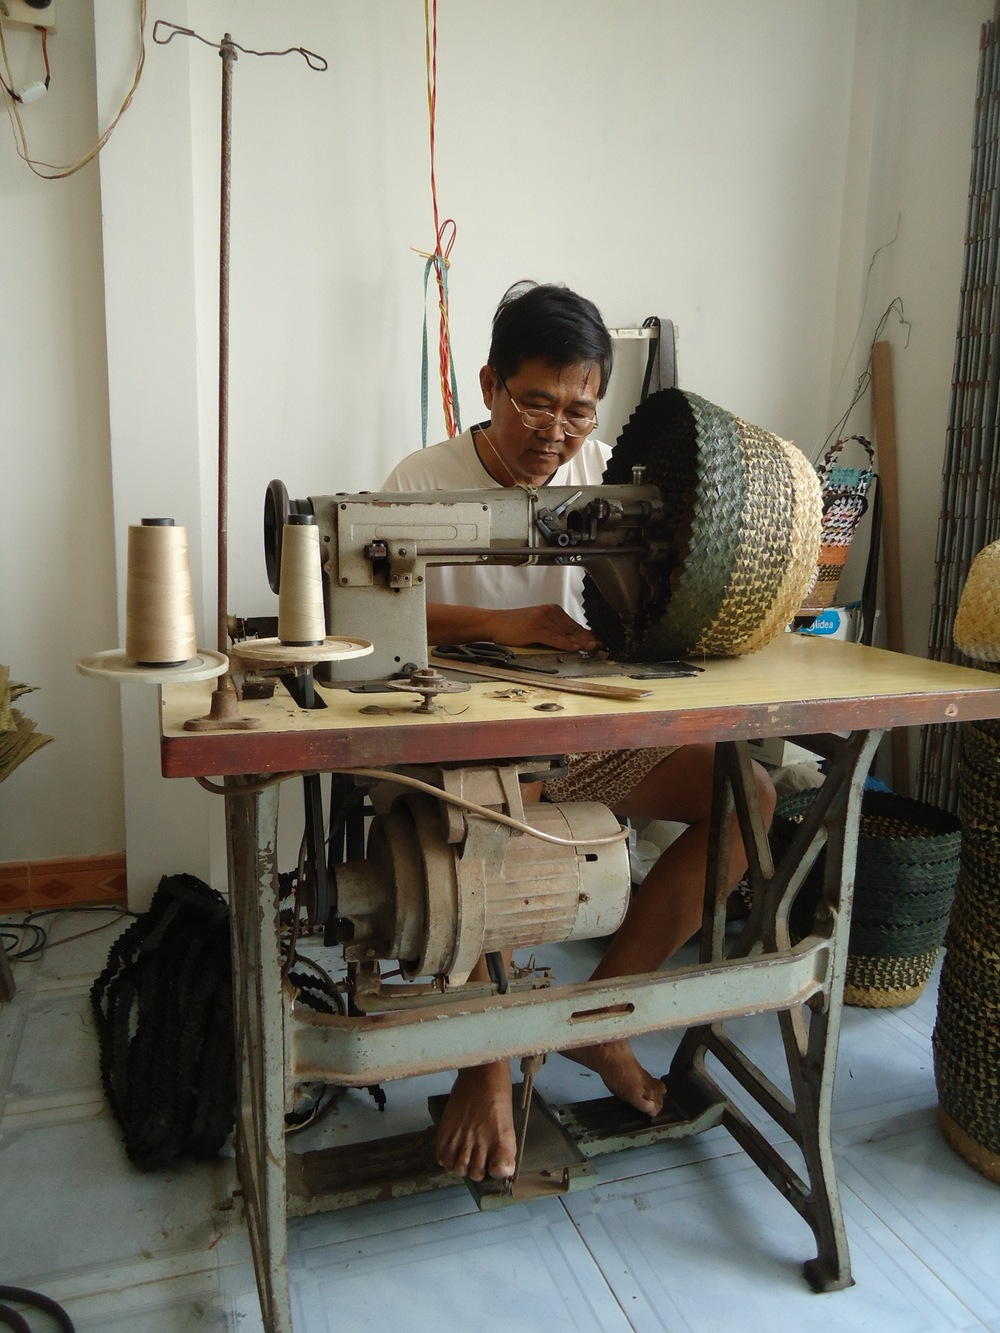 Phuoc at work sewing